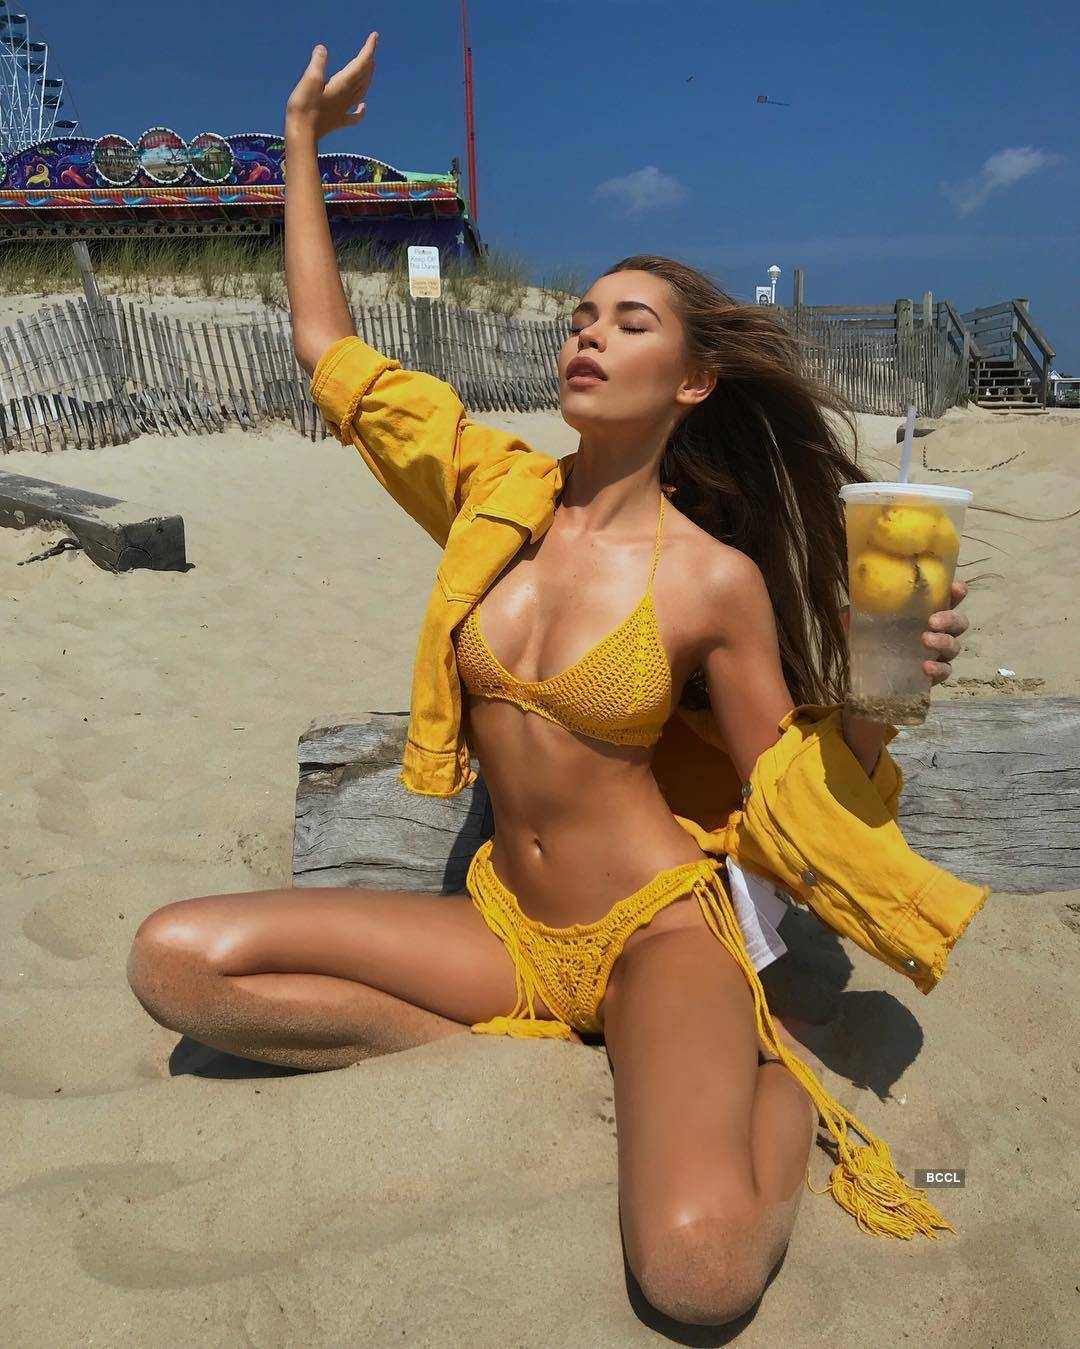 Lithuanian model Dijora Cerios loves to travel